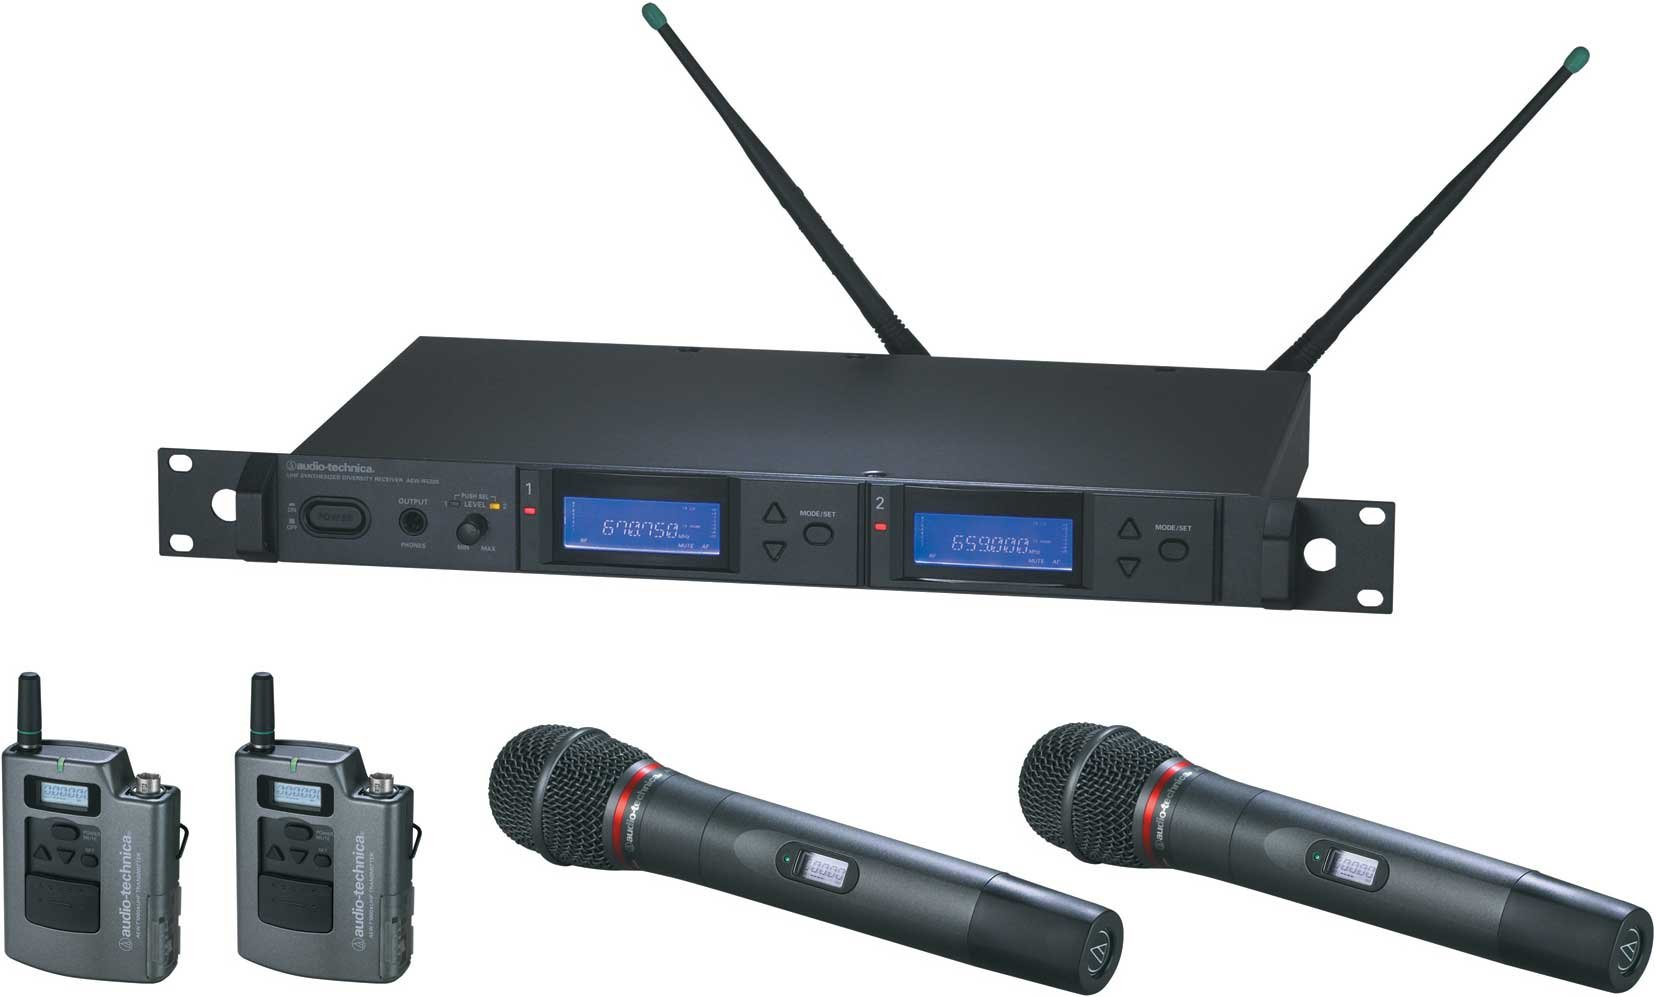 Wireless Mic Microphone System with 2 x Bodypack Transmitters & 2 x AEW-T6100a Hypercardioid Dynamic Mic/Transmitter, UHF Band C: 541.500 MHz to 566.375 MHz